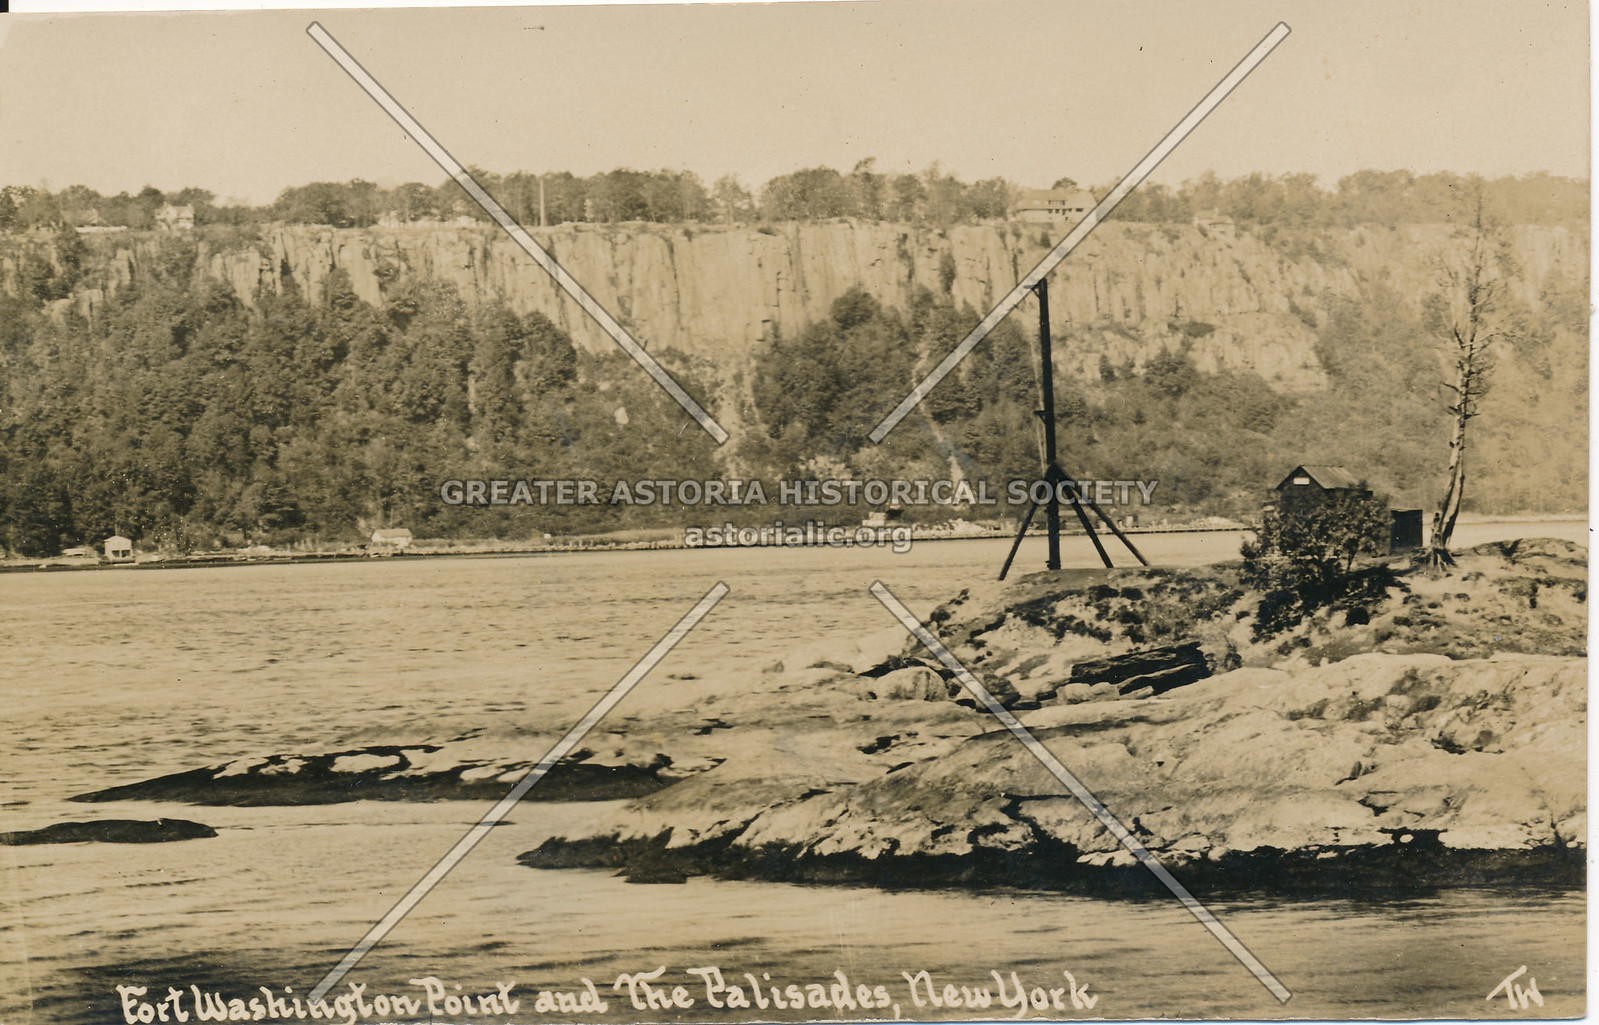 Fort Washington Point & the Palisades, N.Y.